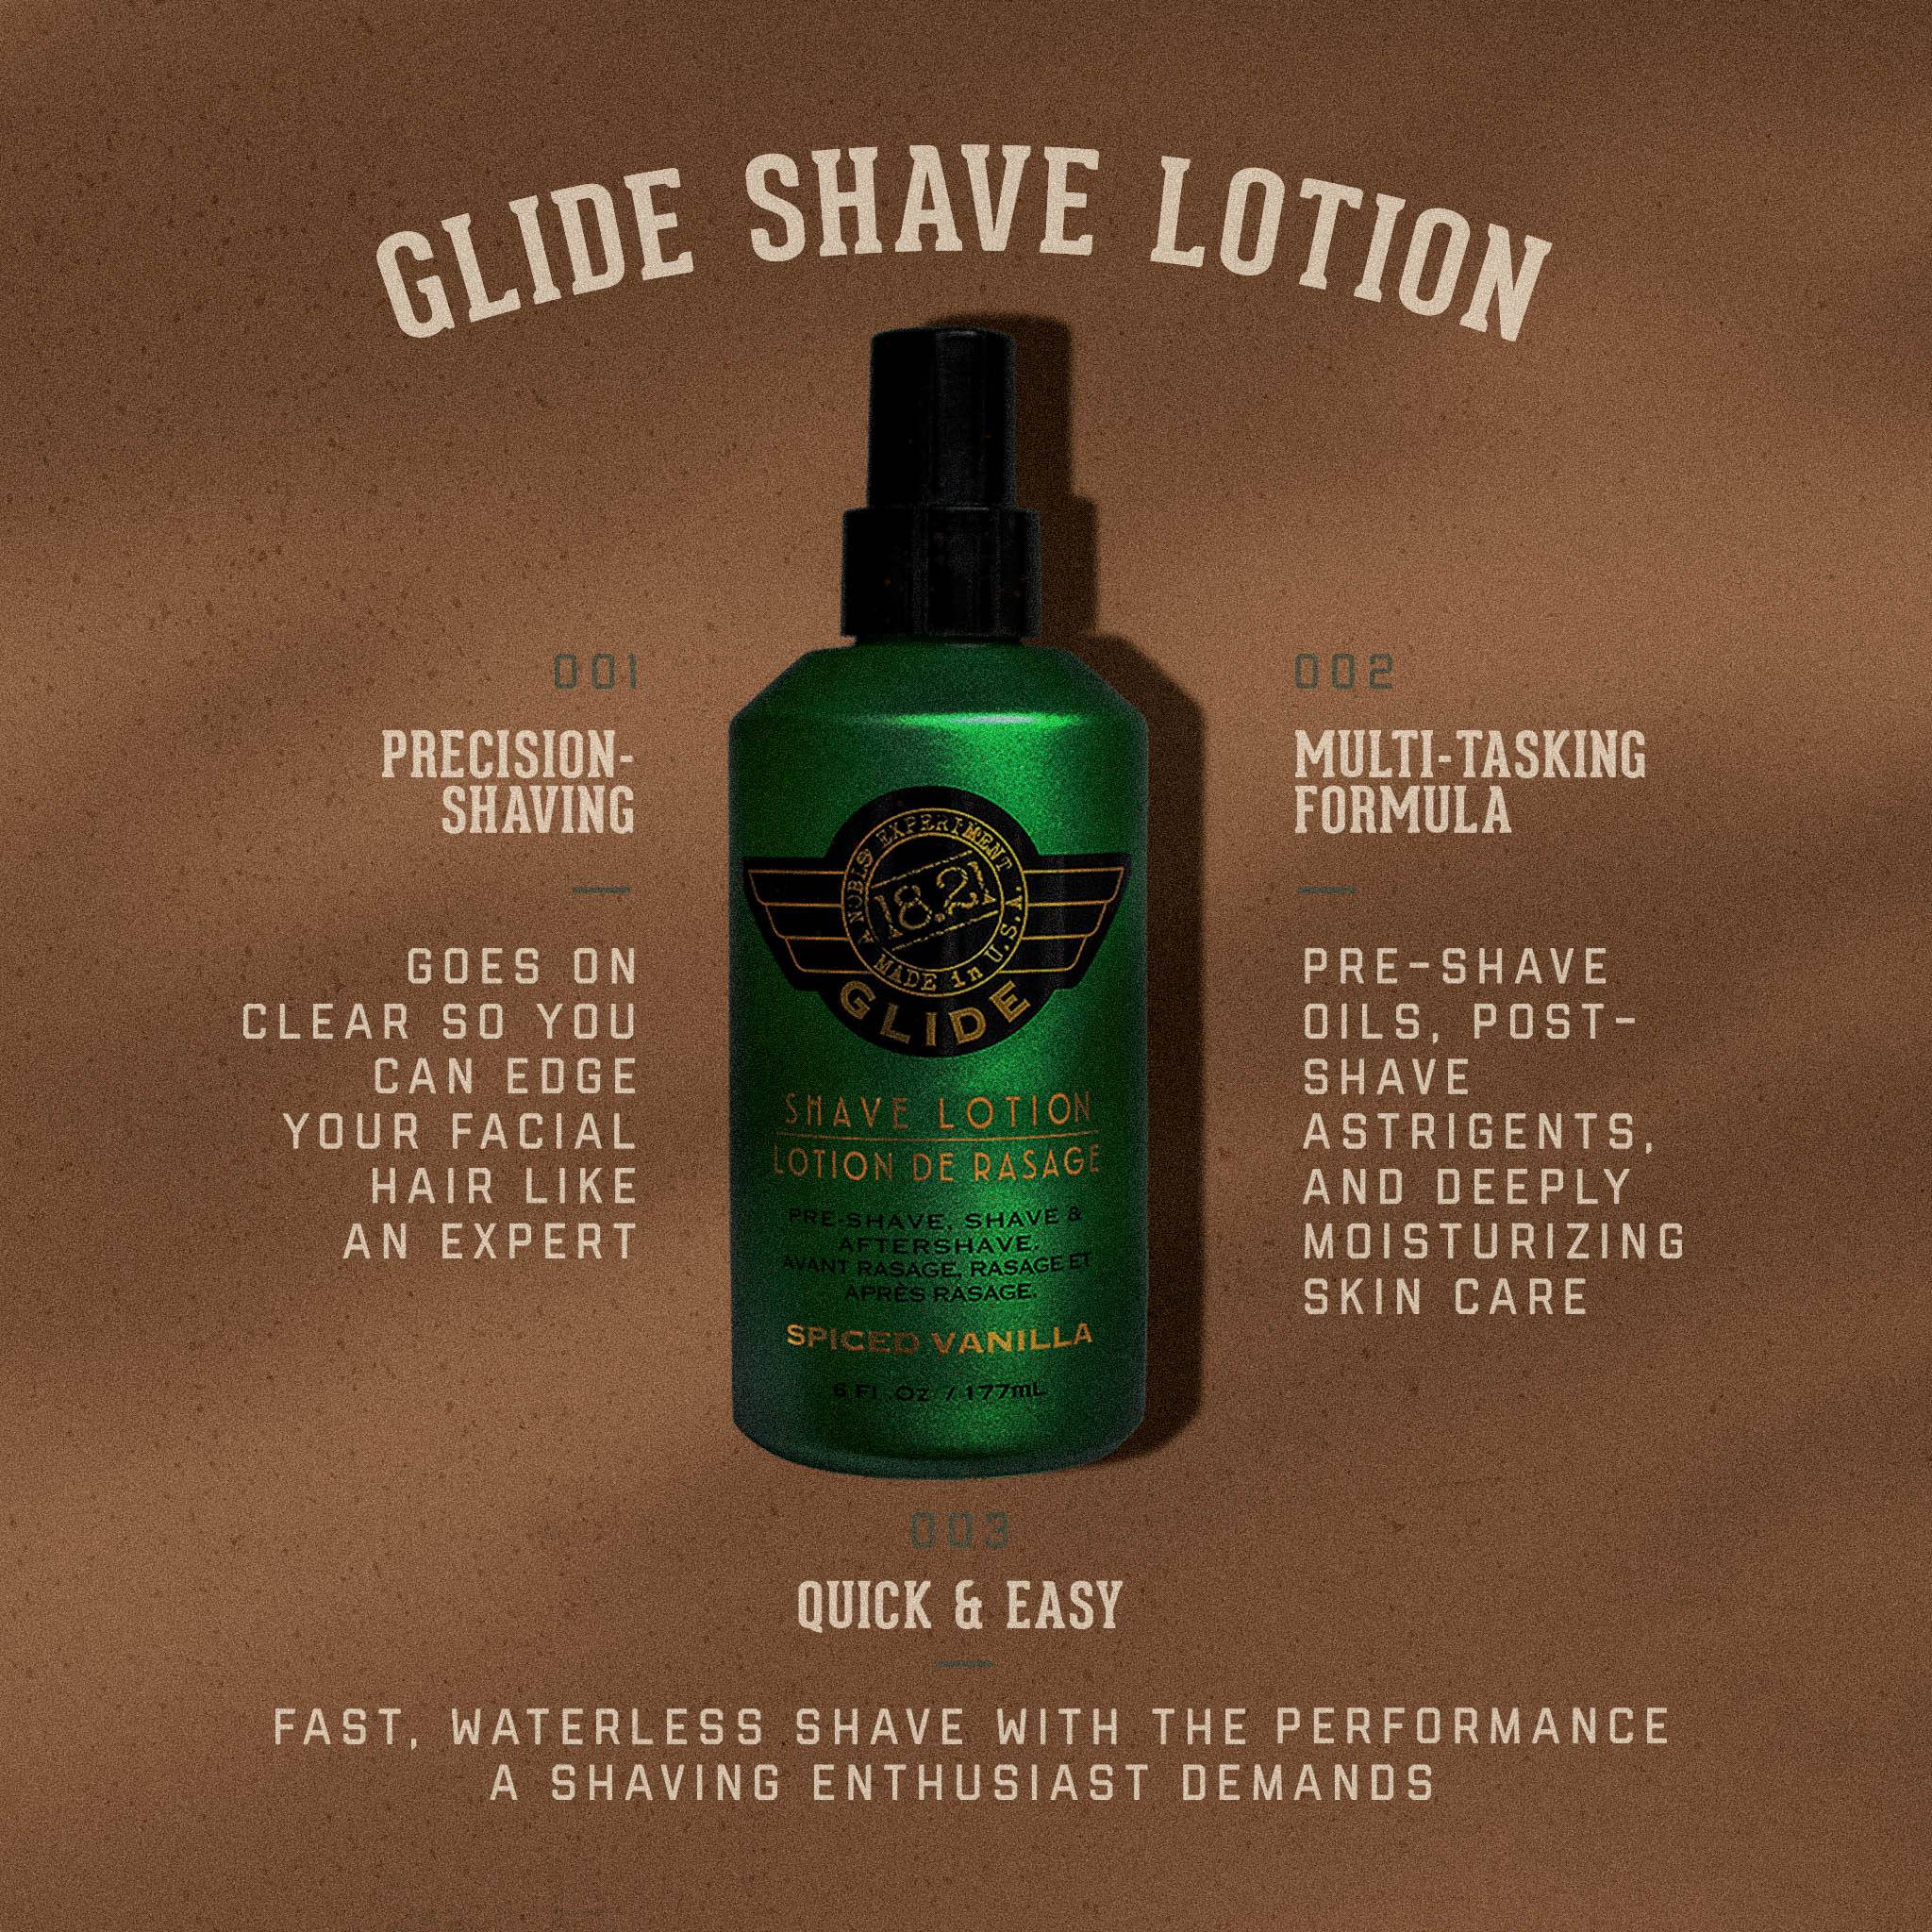 Spiced Vanilla Glide Shave Lotion